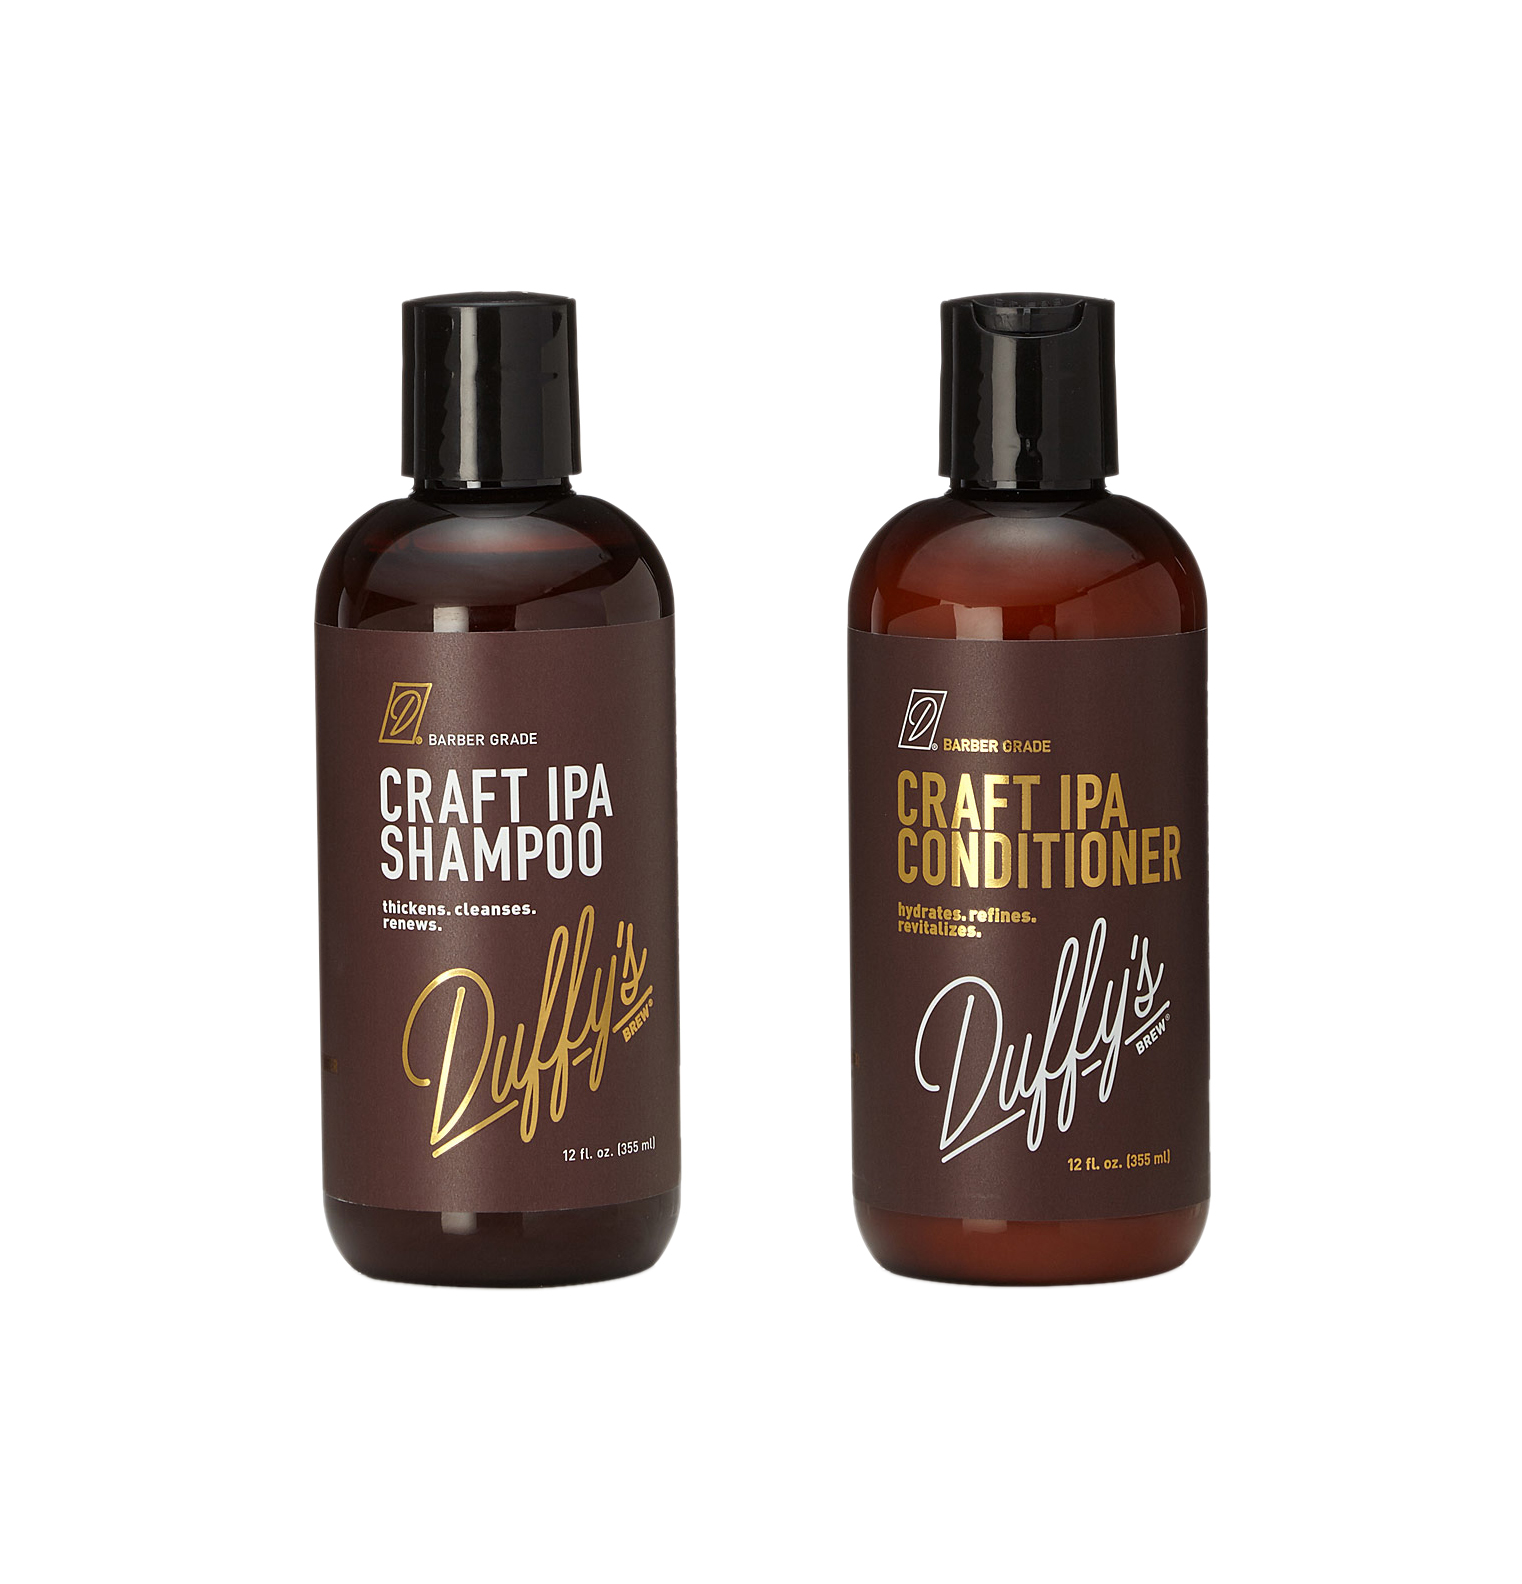 Craft IPA Beer Shampoo and Conditioner